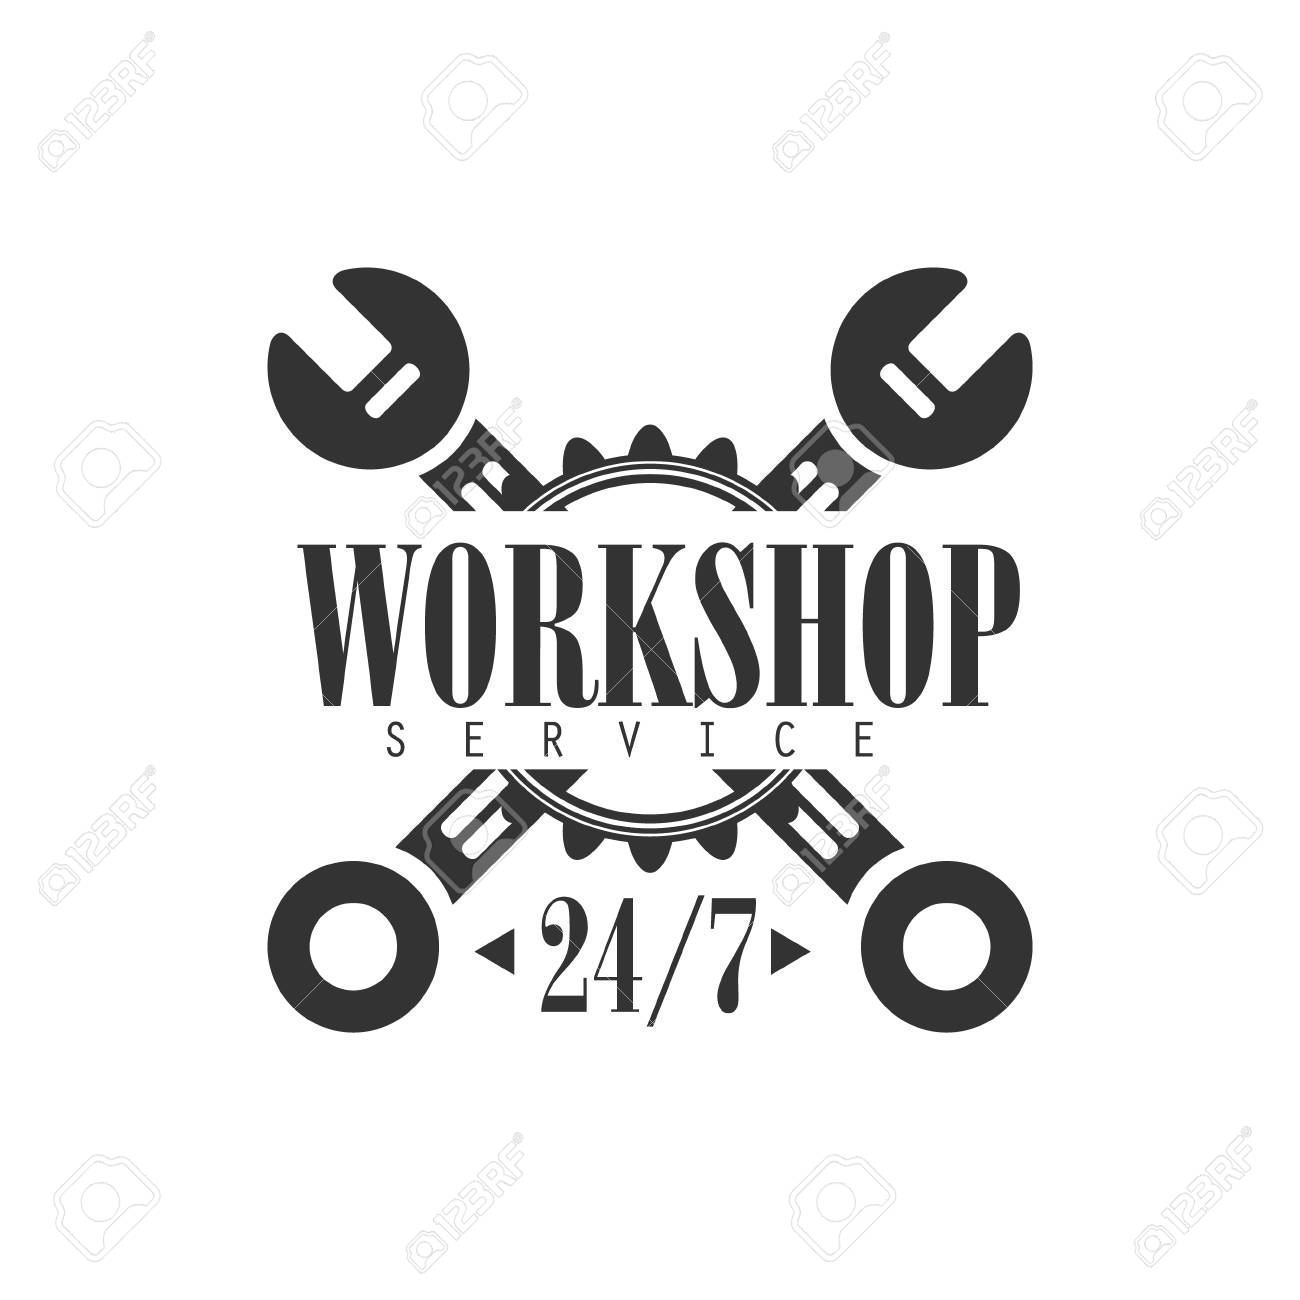 Round The Clock Car Repair Workshop Black And White Label Design Royalty Free Cliparts Vectors And Stock Illustration Image 69735616